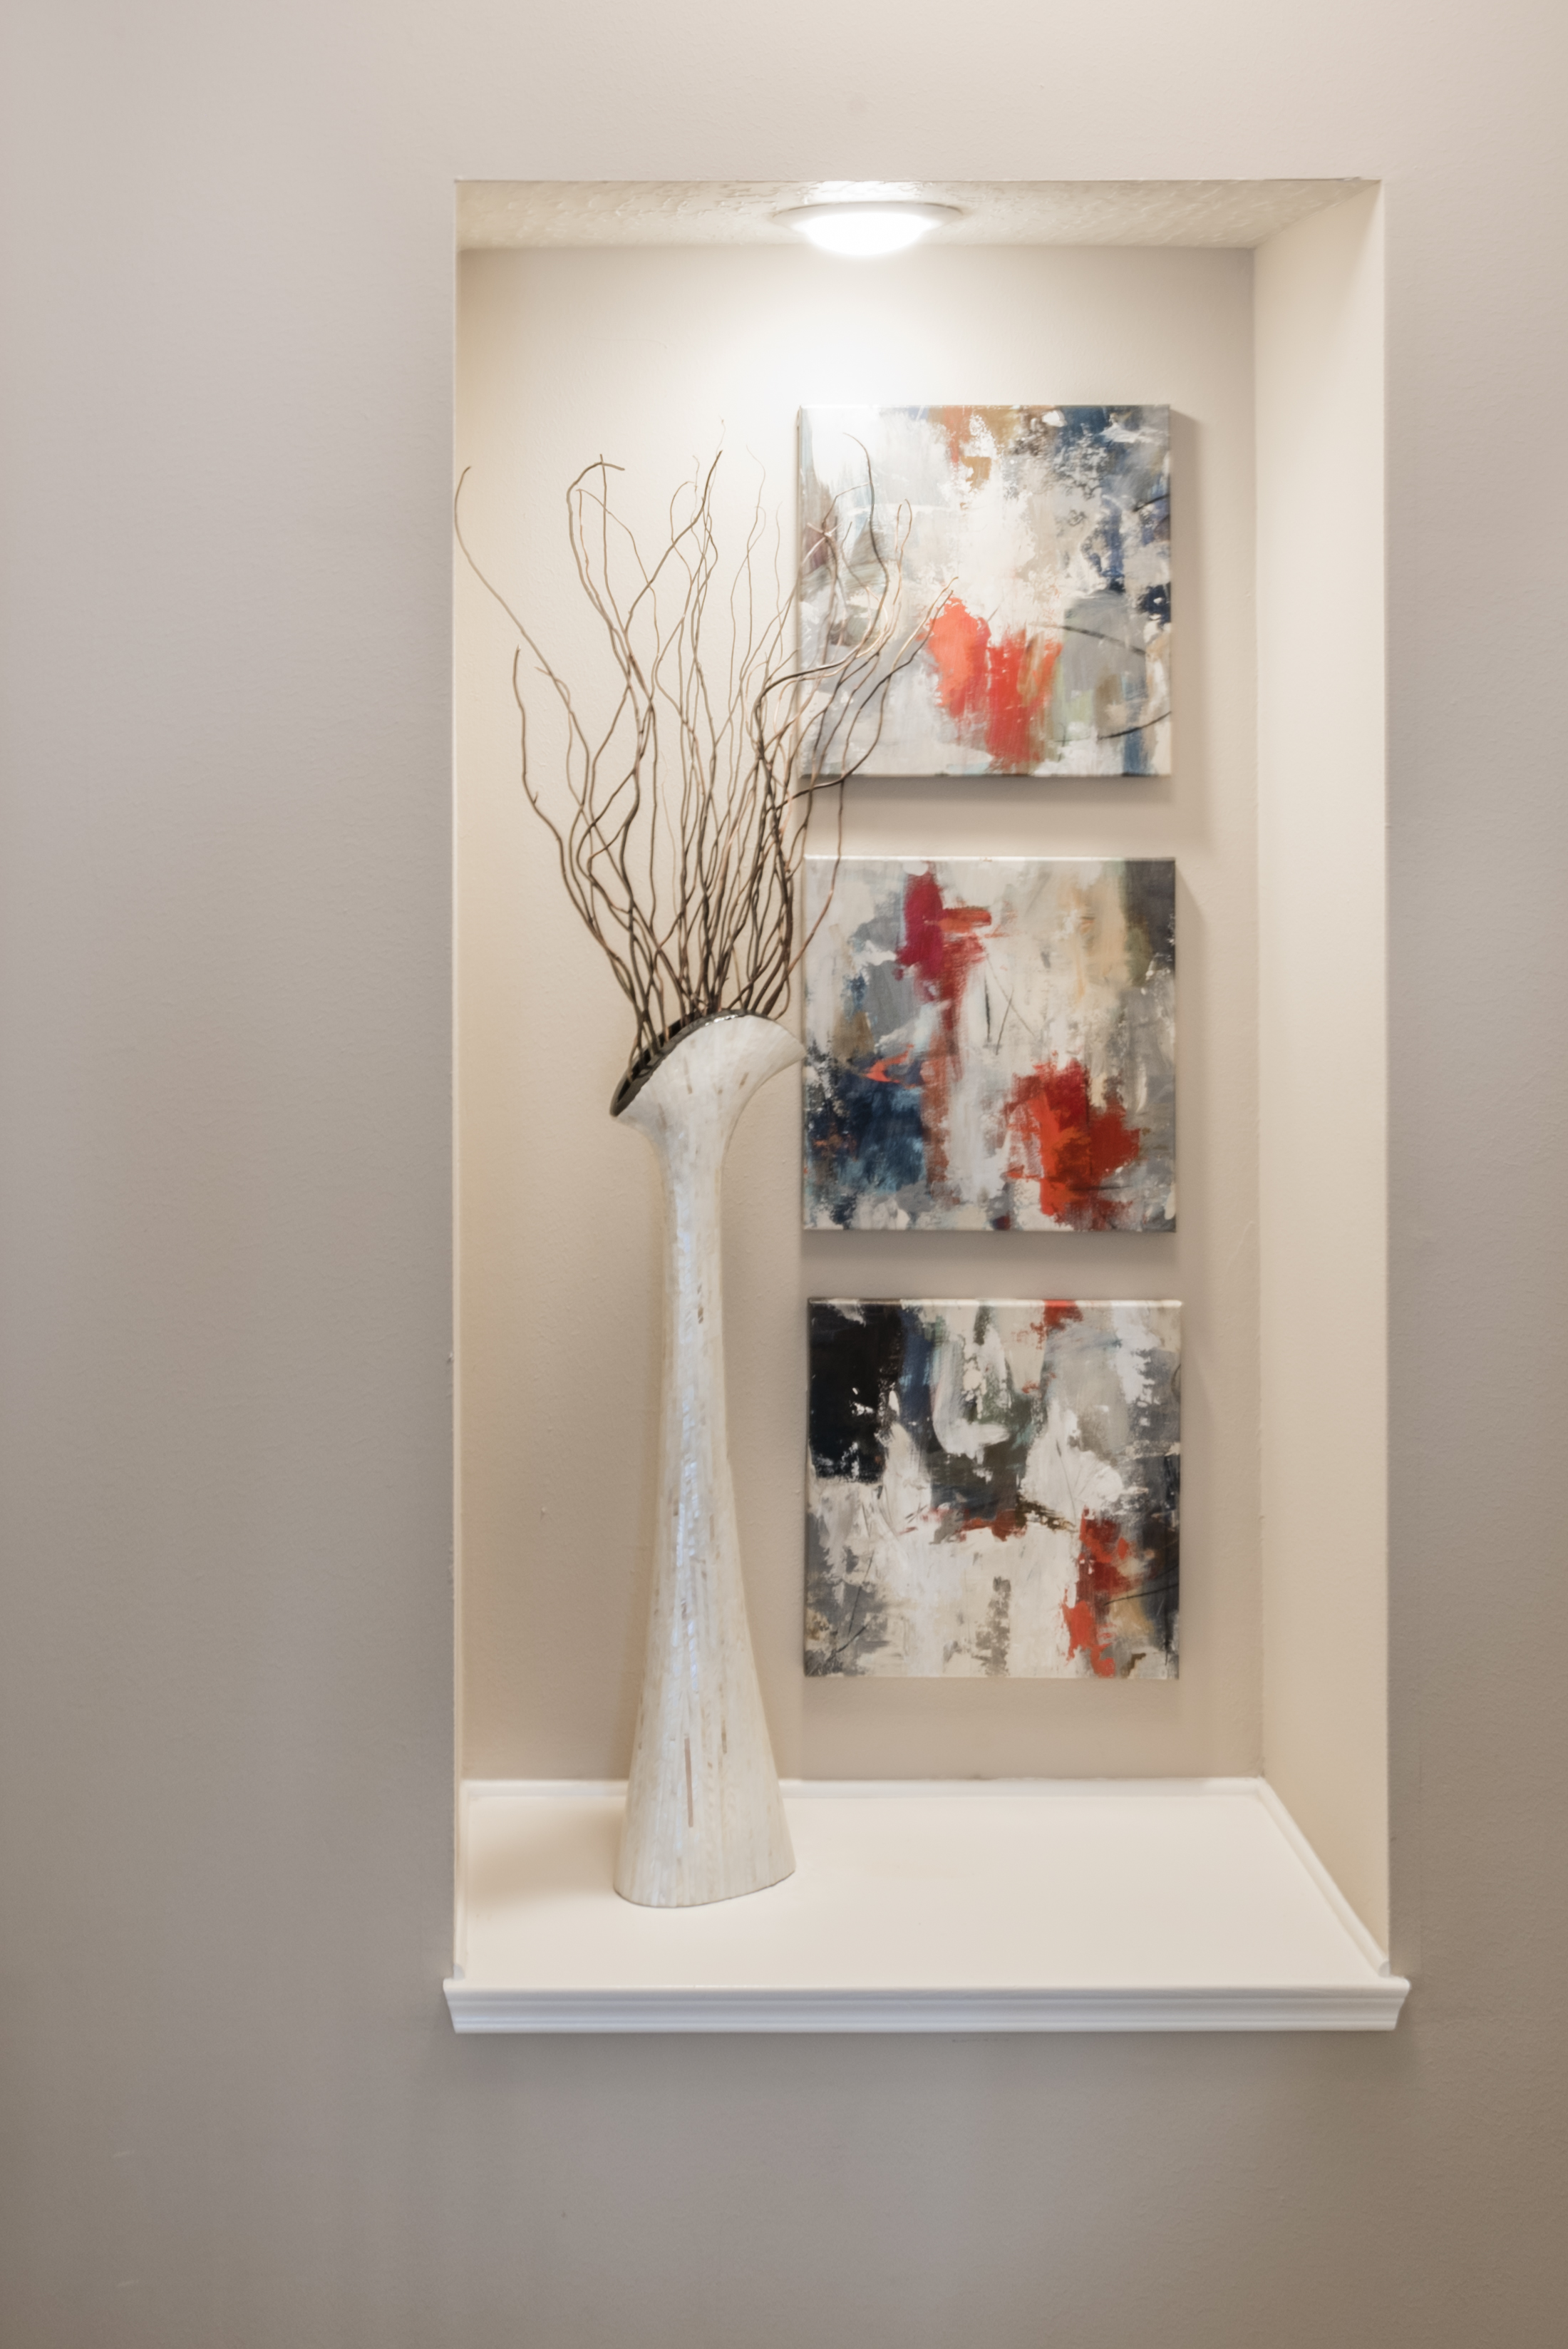 MODERN ART NICHE WITH FLORAL AND ART